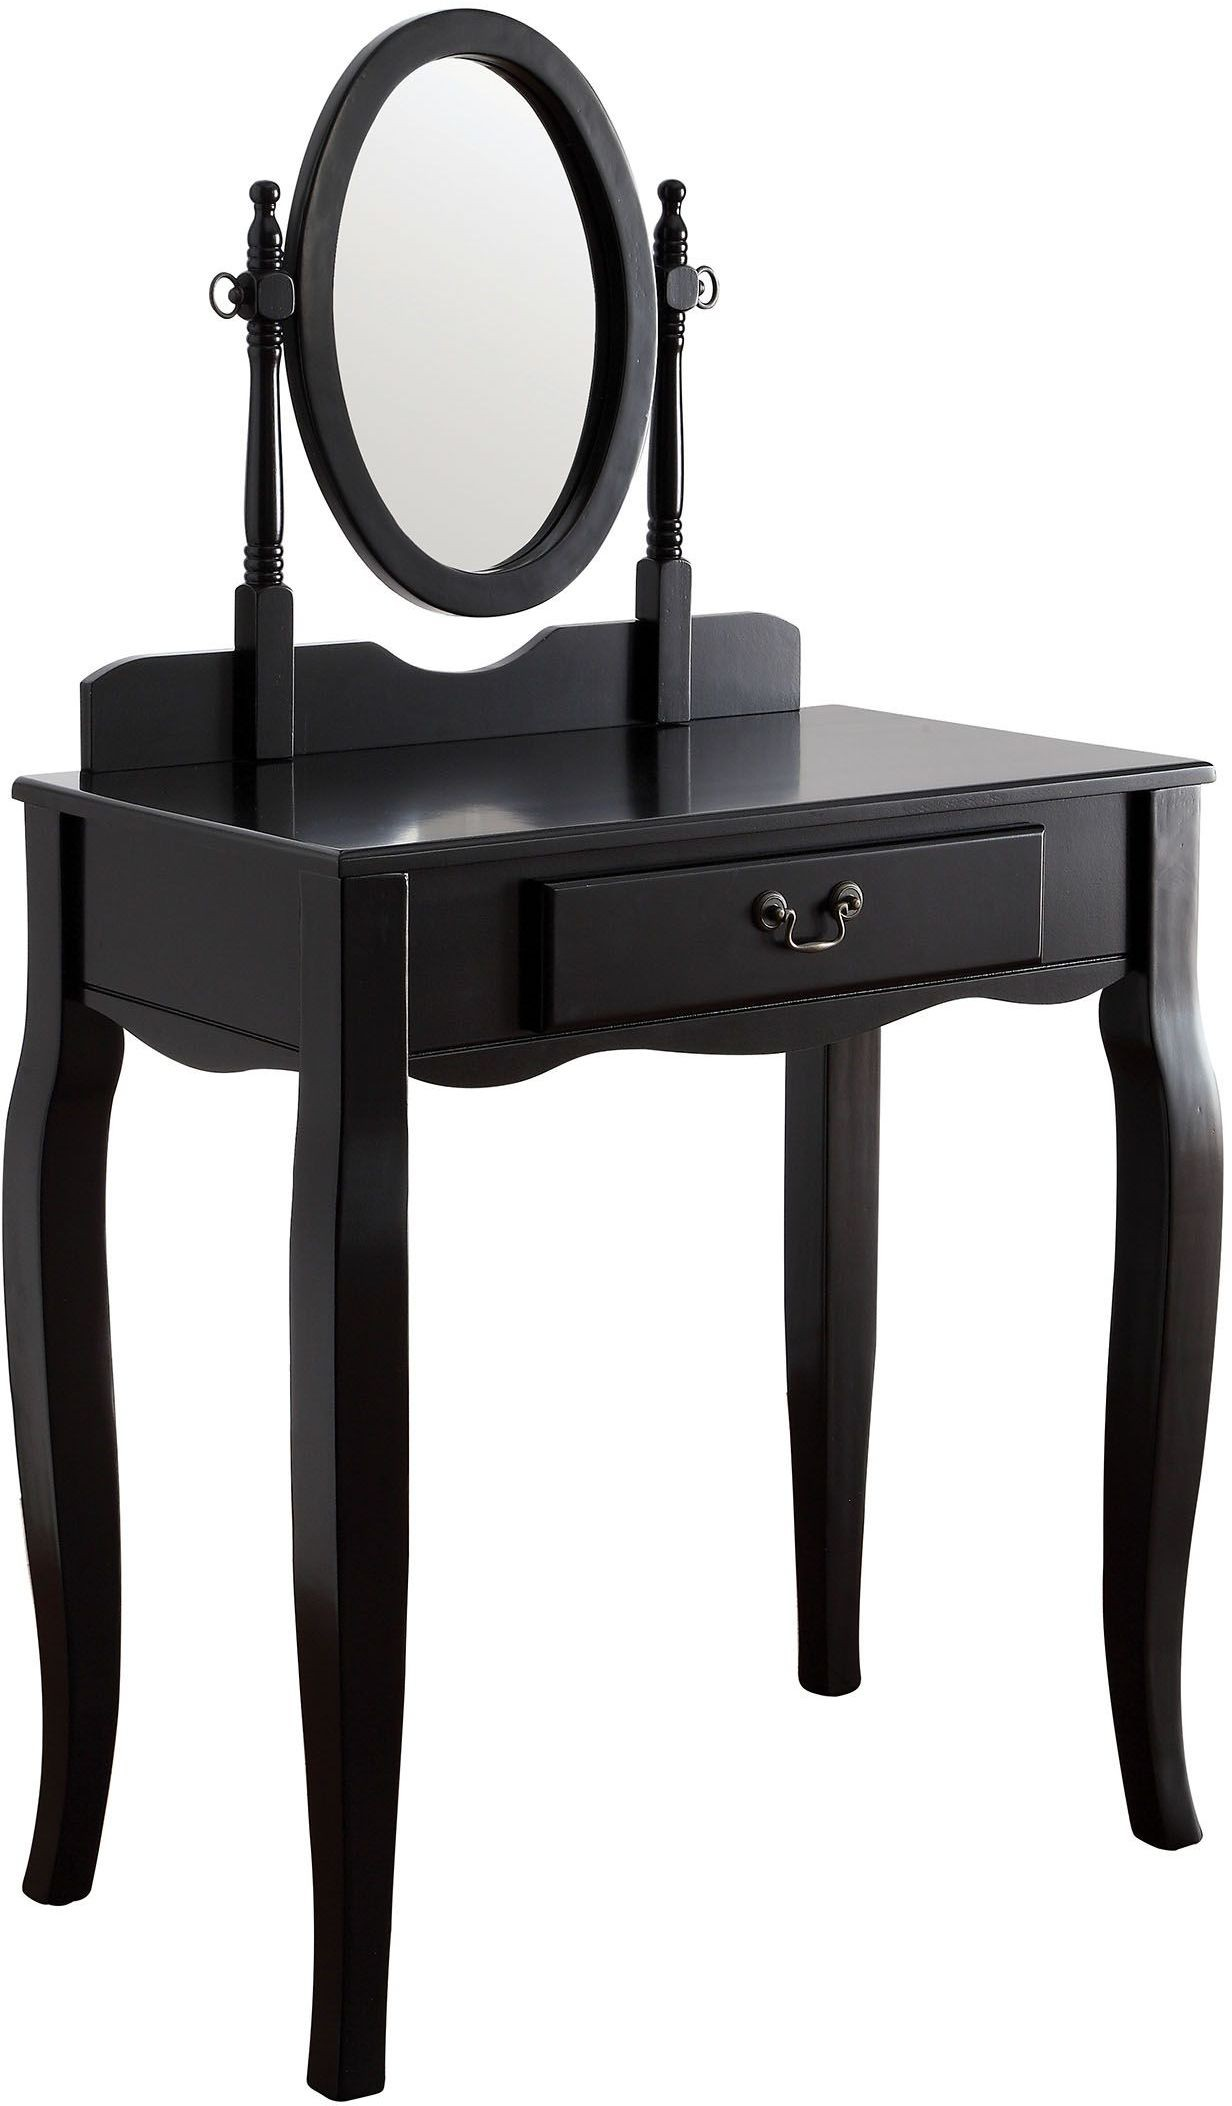 Samantha black vanity with stool cm dk6433bk furniture of america - Black and white vanity stool ...